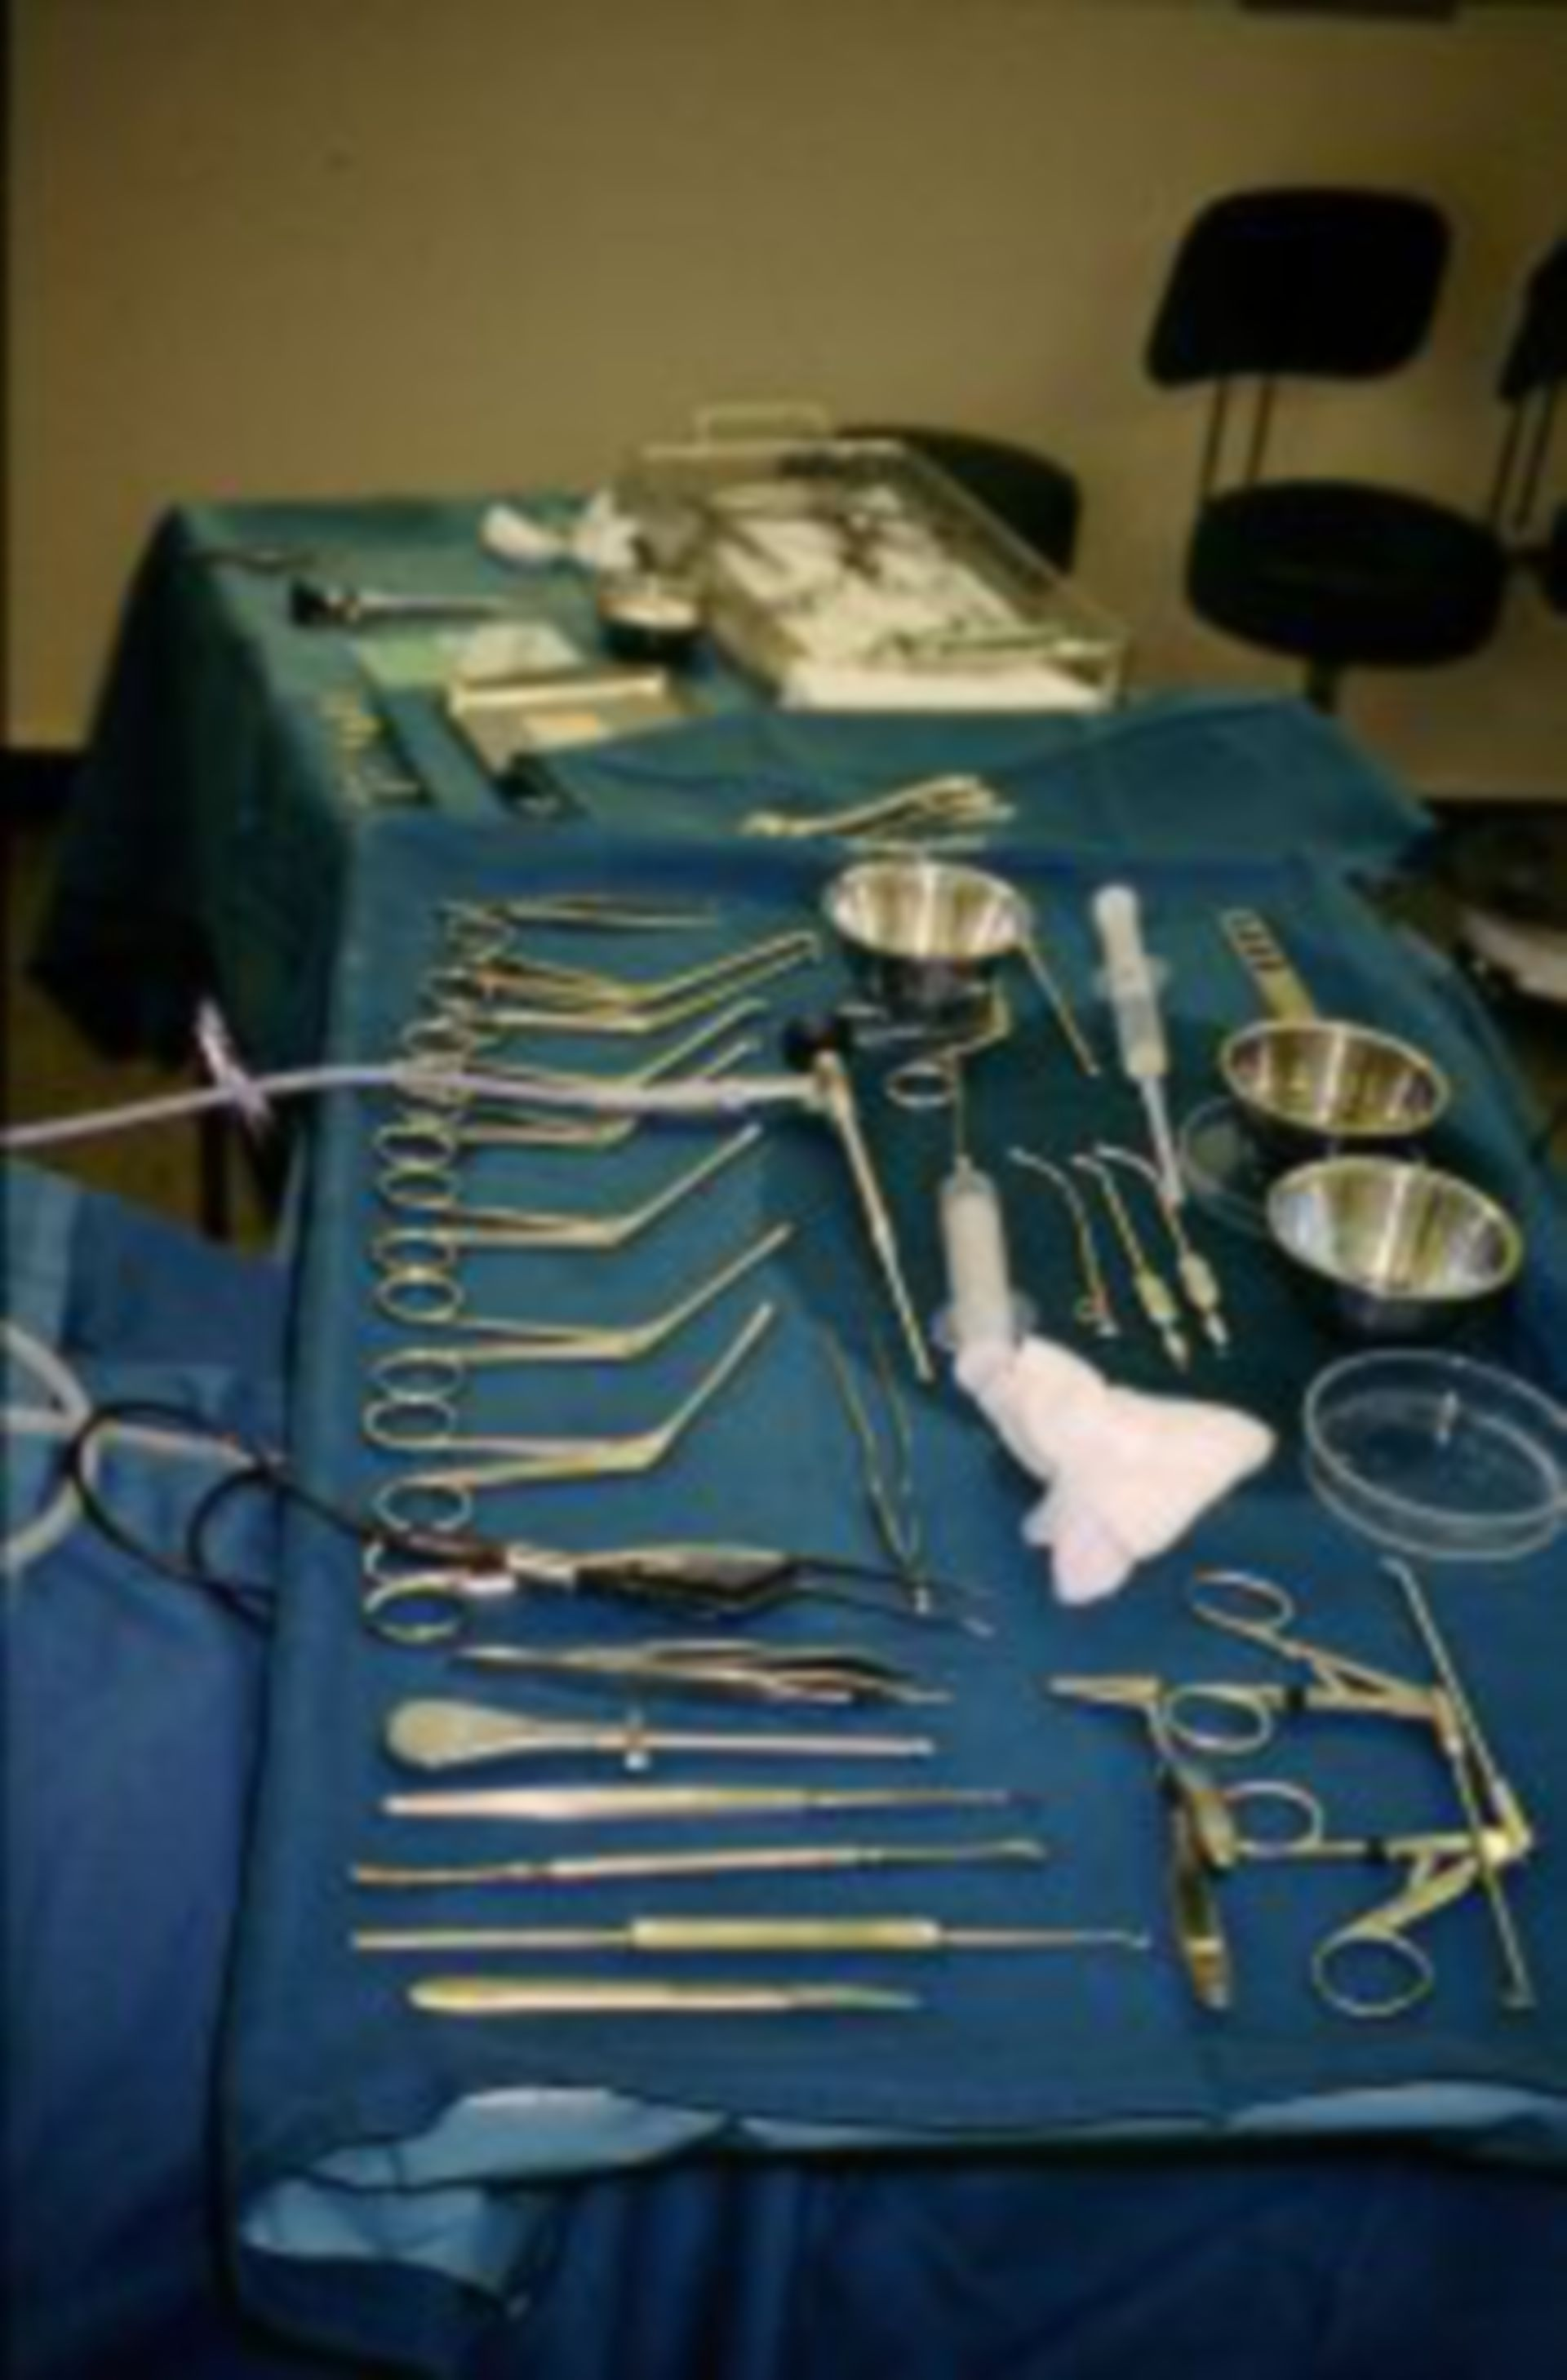 Specialized microsurgical instruments